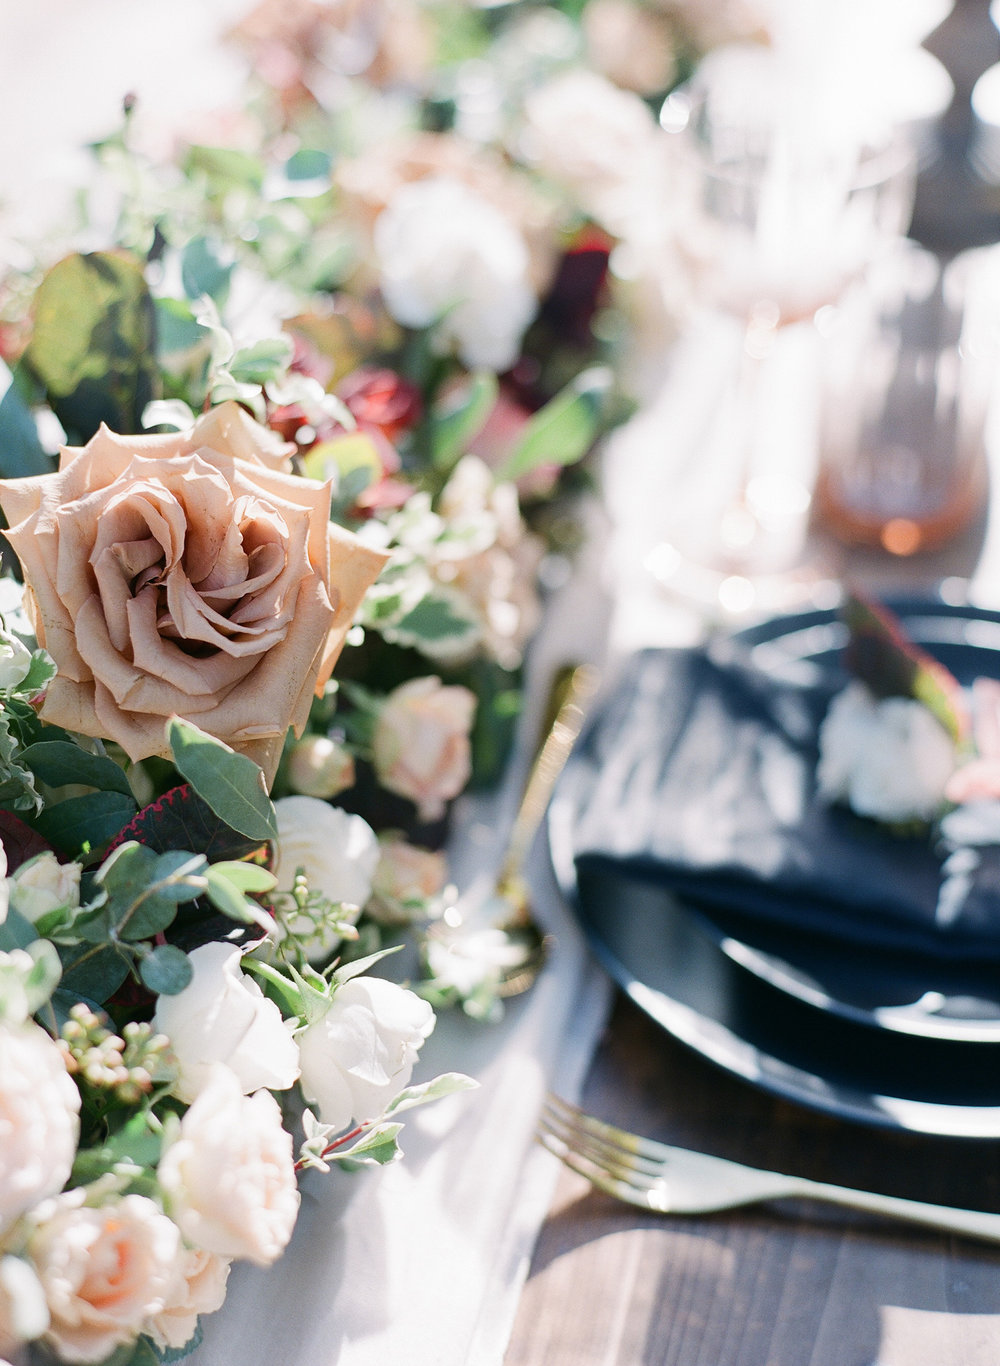 Luxury Wedding Planner UK, London & Europe | A Feminine & Refined Autumn Wedding Inspiration | English Manor Country Autumn Wedding Moody Romantic Warm Velvet Black Red and Peach Tones | Molly Carr Photography106.JPG